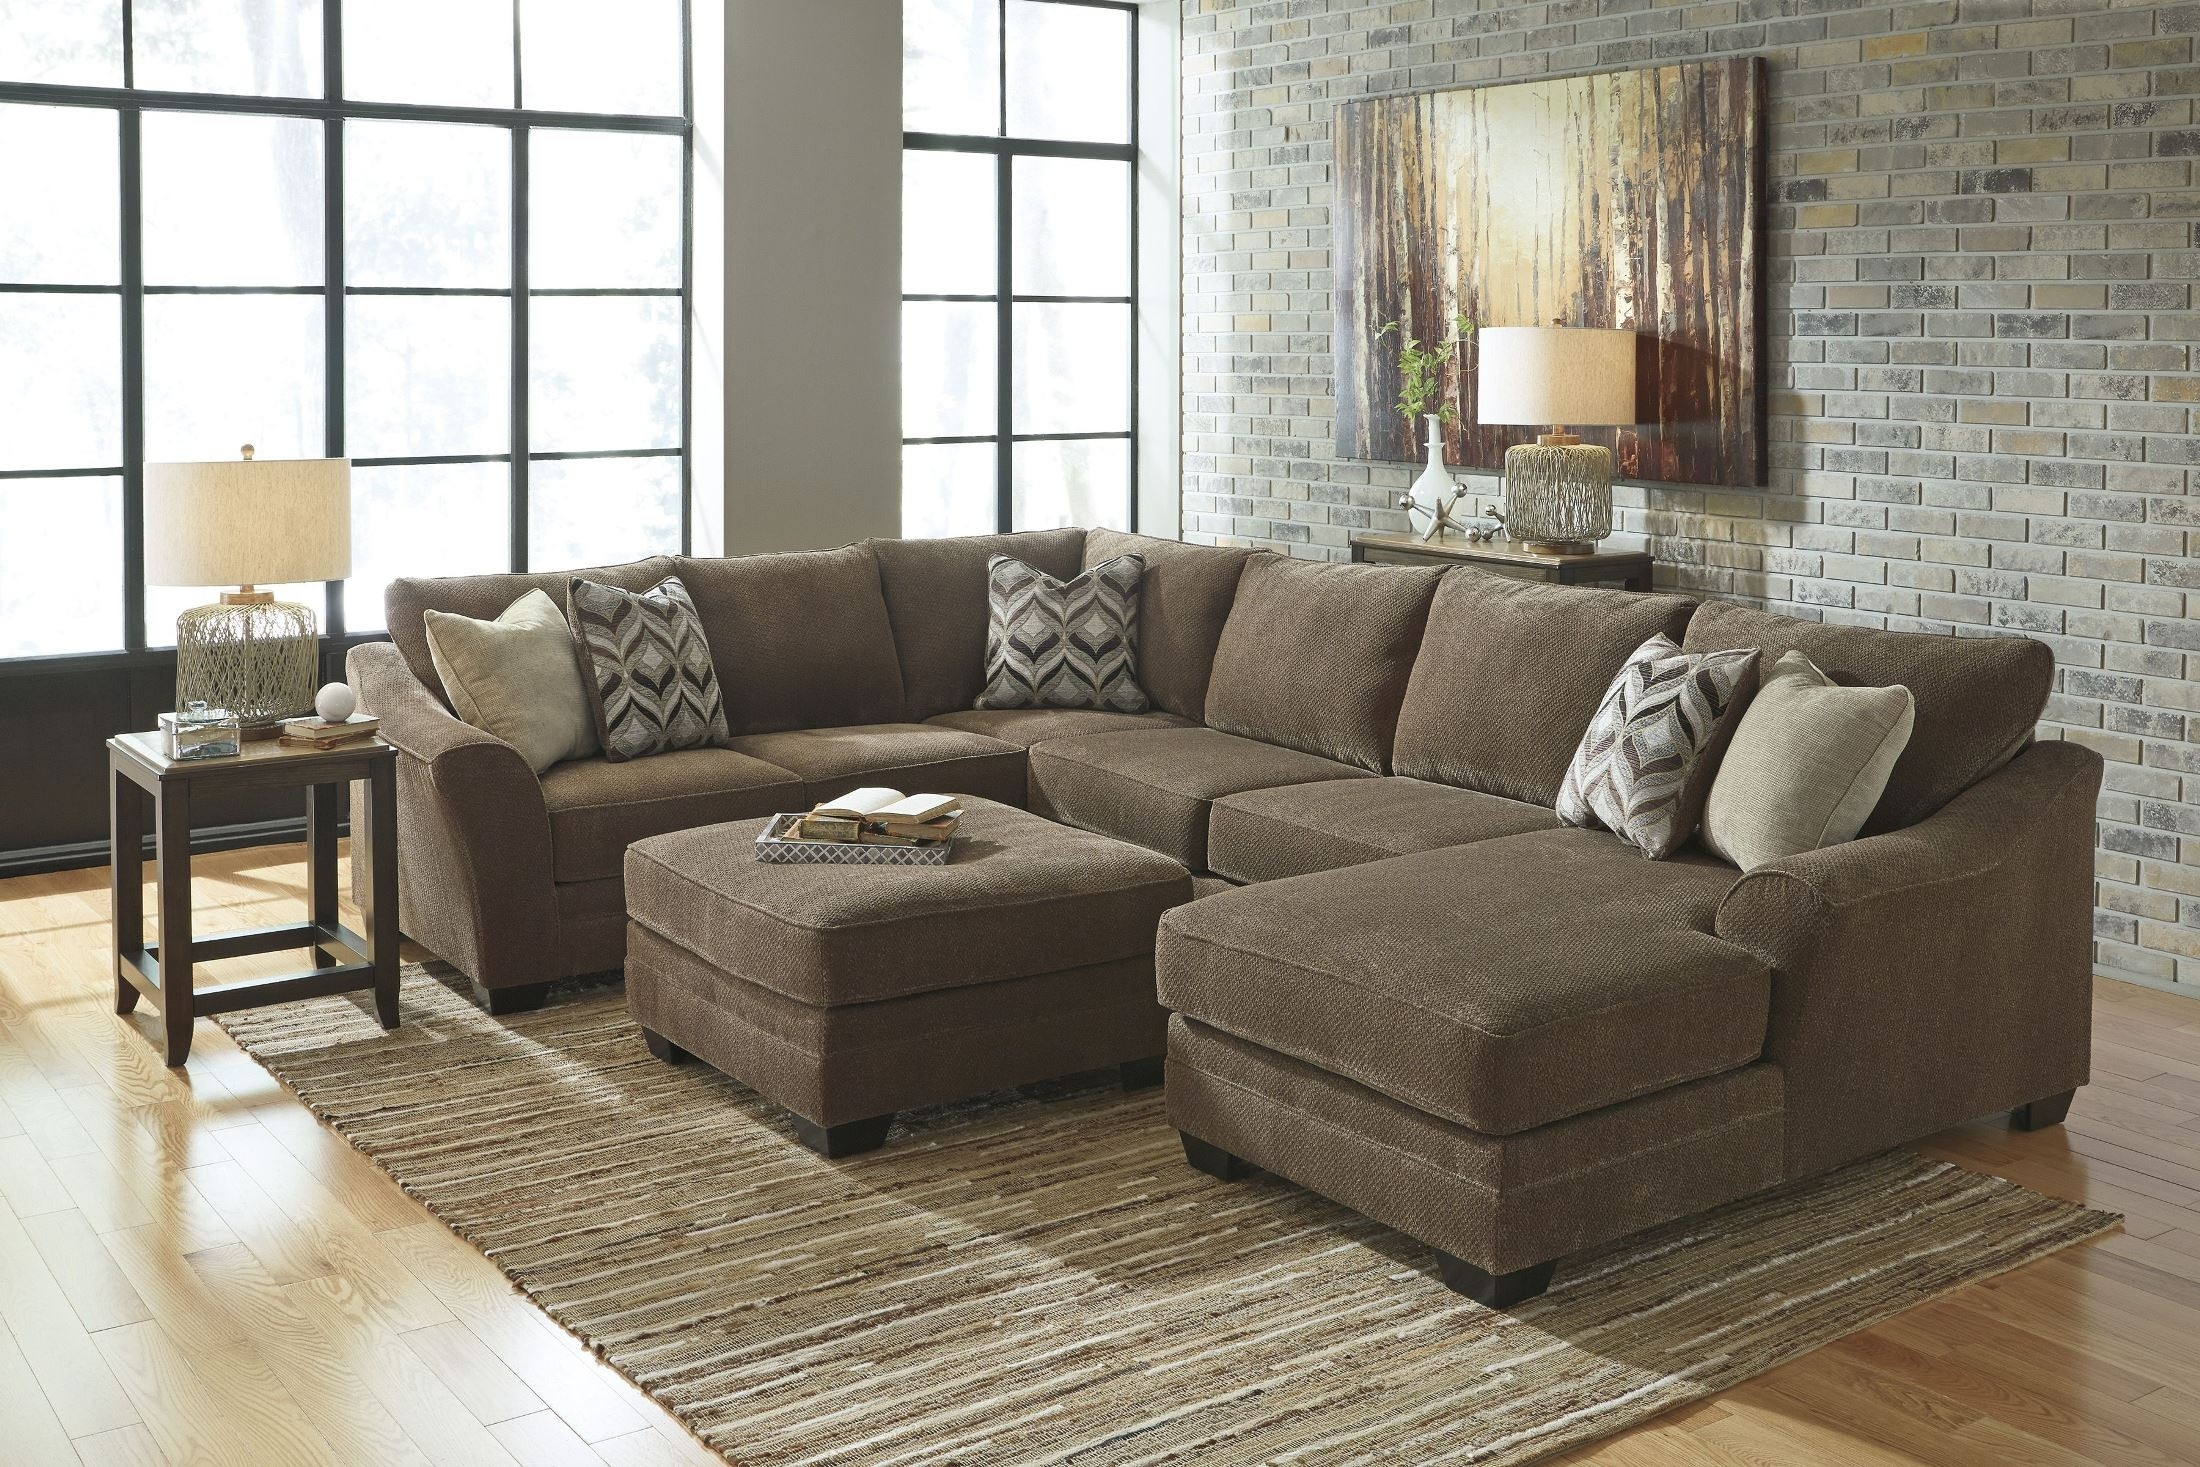 Sofas Oversized Sofas Sectional Couch For Sale Oversized Sofa In Oversized Sofa Chairs (Image 13 of 15)